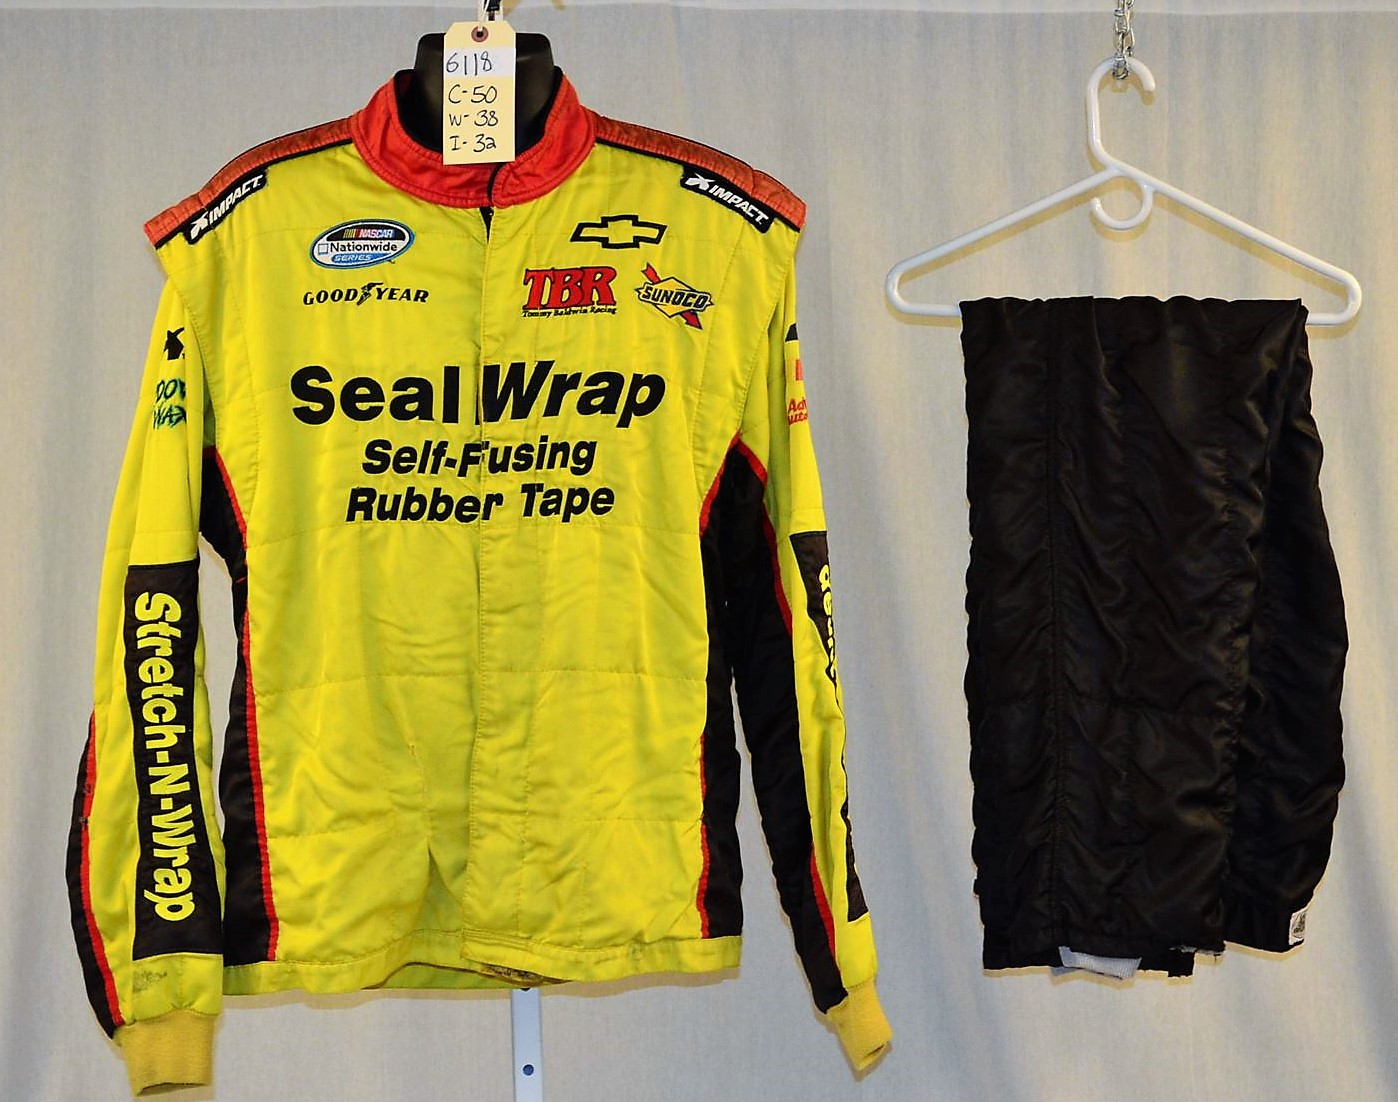 Racing Fire Suits >> Impact Nascar Seal Wrap Sfi 5 Racing Fire Suit 6118 C50 W38 I32